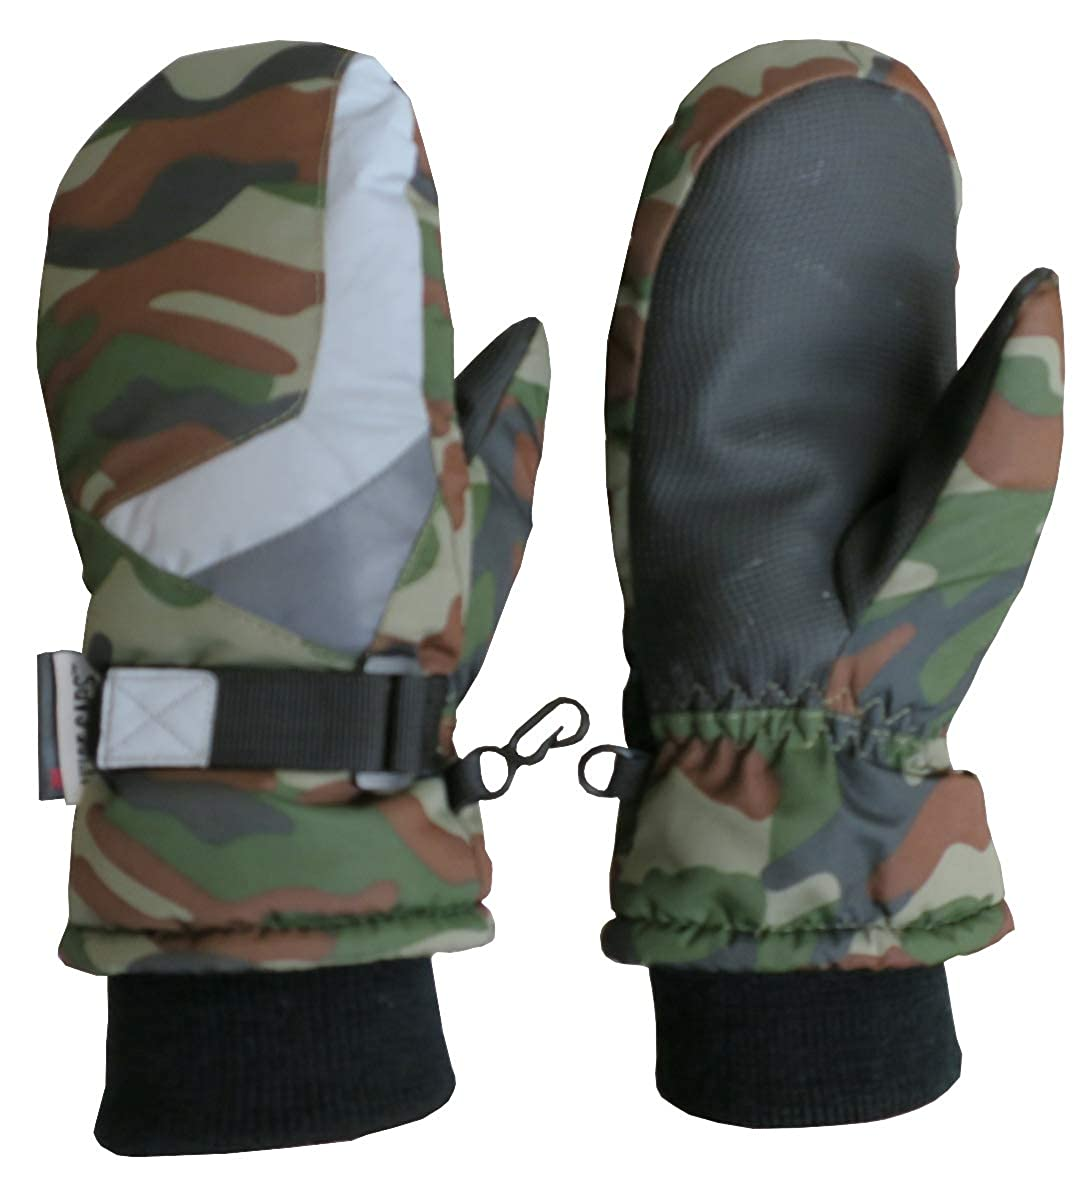 N'Ice Caps Kids Winter Waterproof Thinsulate Colorblock Reflector Snow Mittens Green Camo Reflector) 5154-GC-CLXL